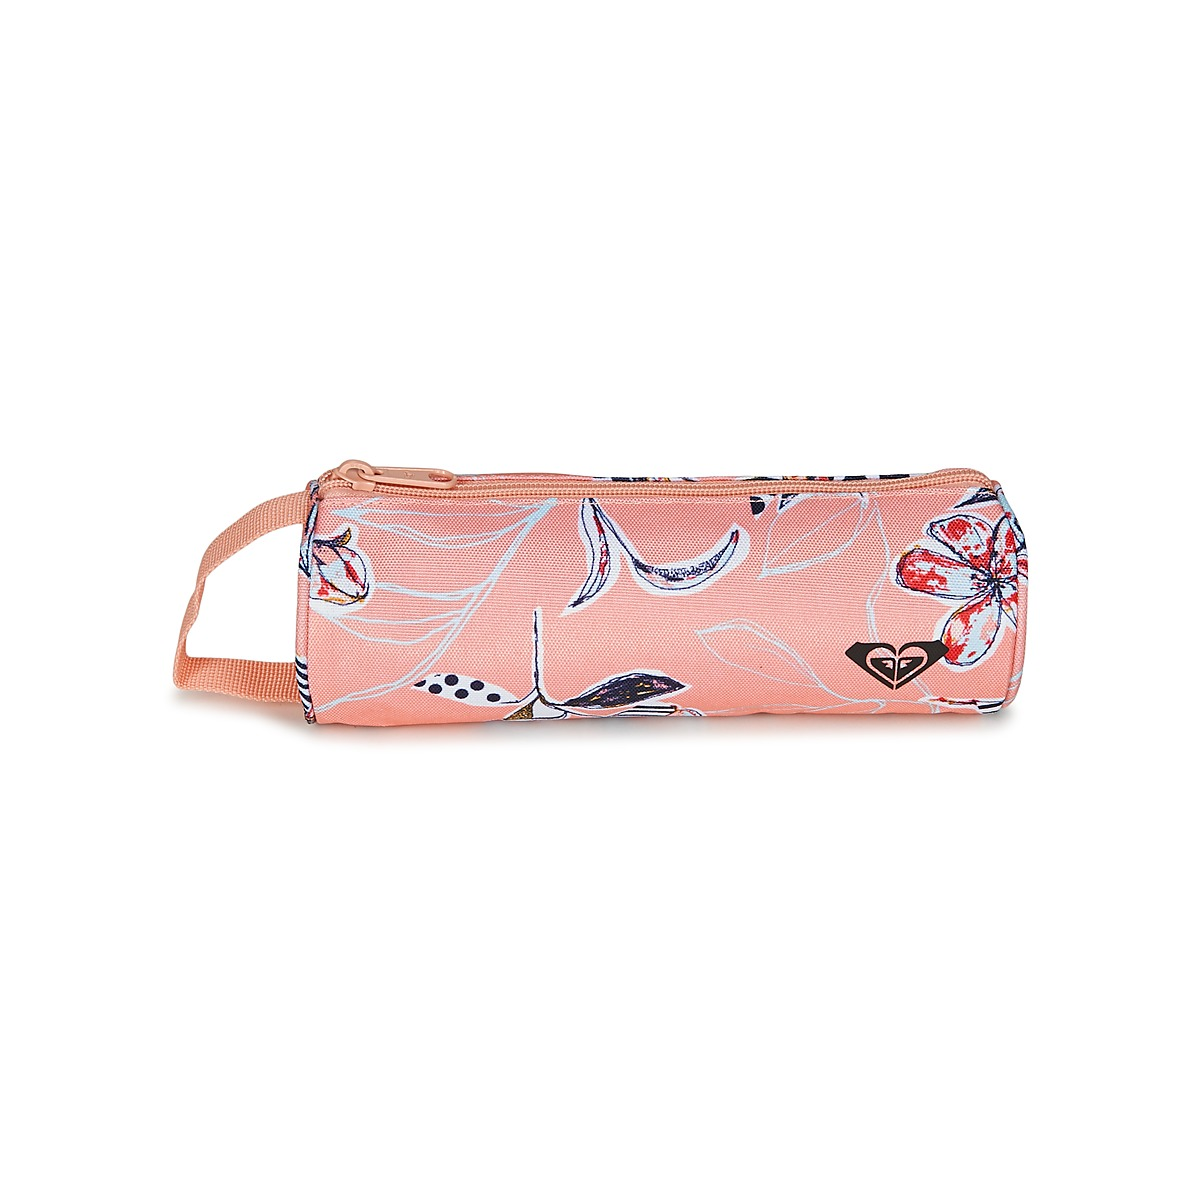 Trousse donna Roxy  OFF THE WALL  Rosa